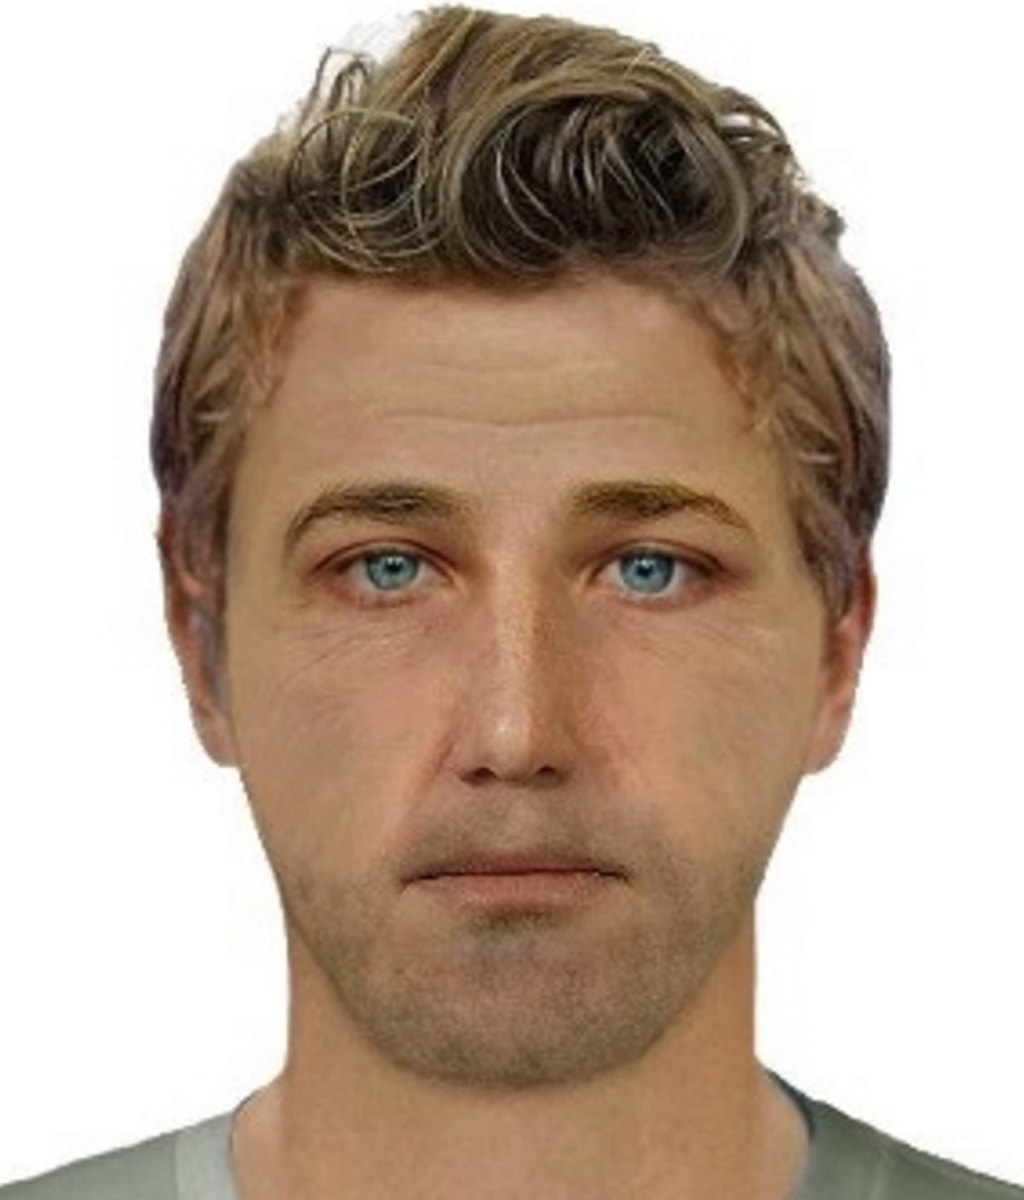 Police have released a digital image of a man they want to interview. (Victoria Police)